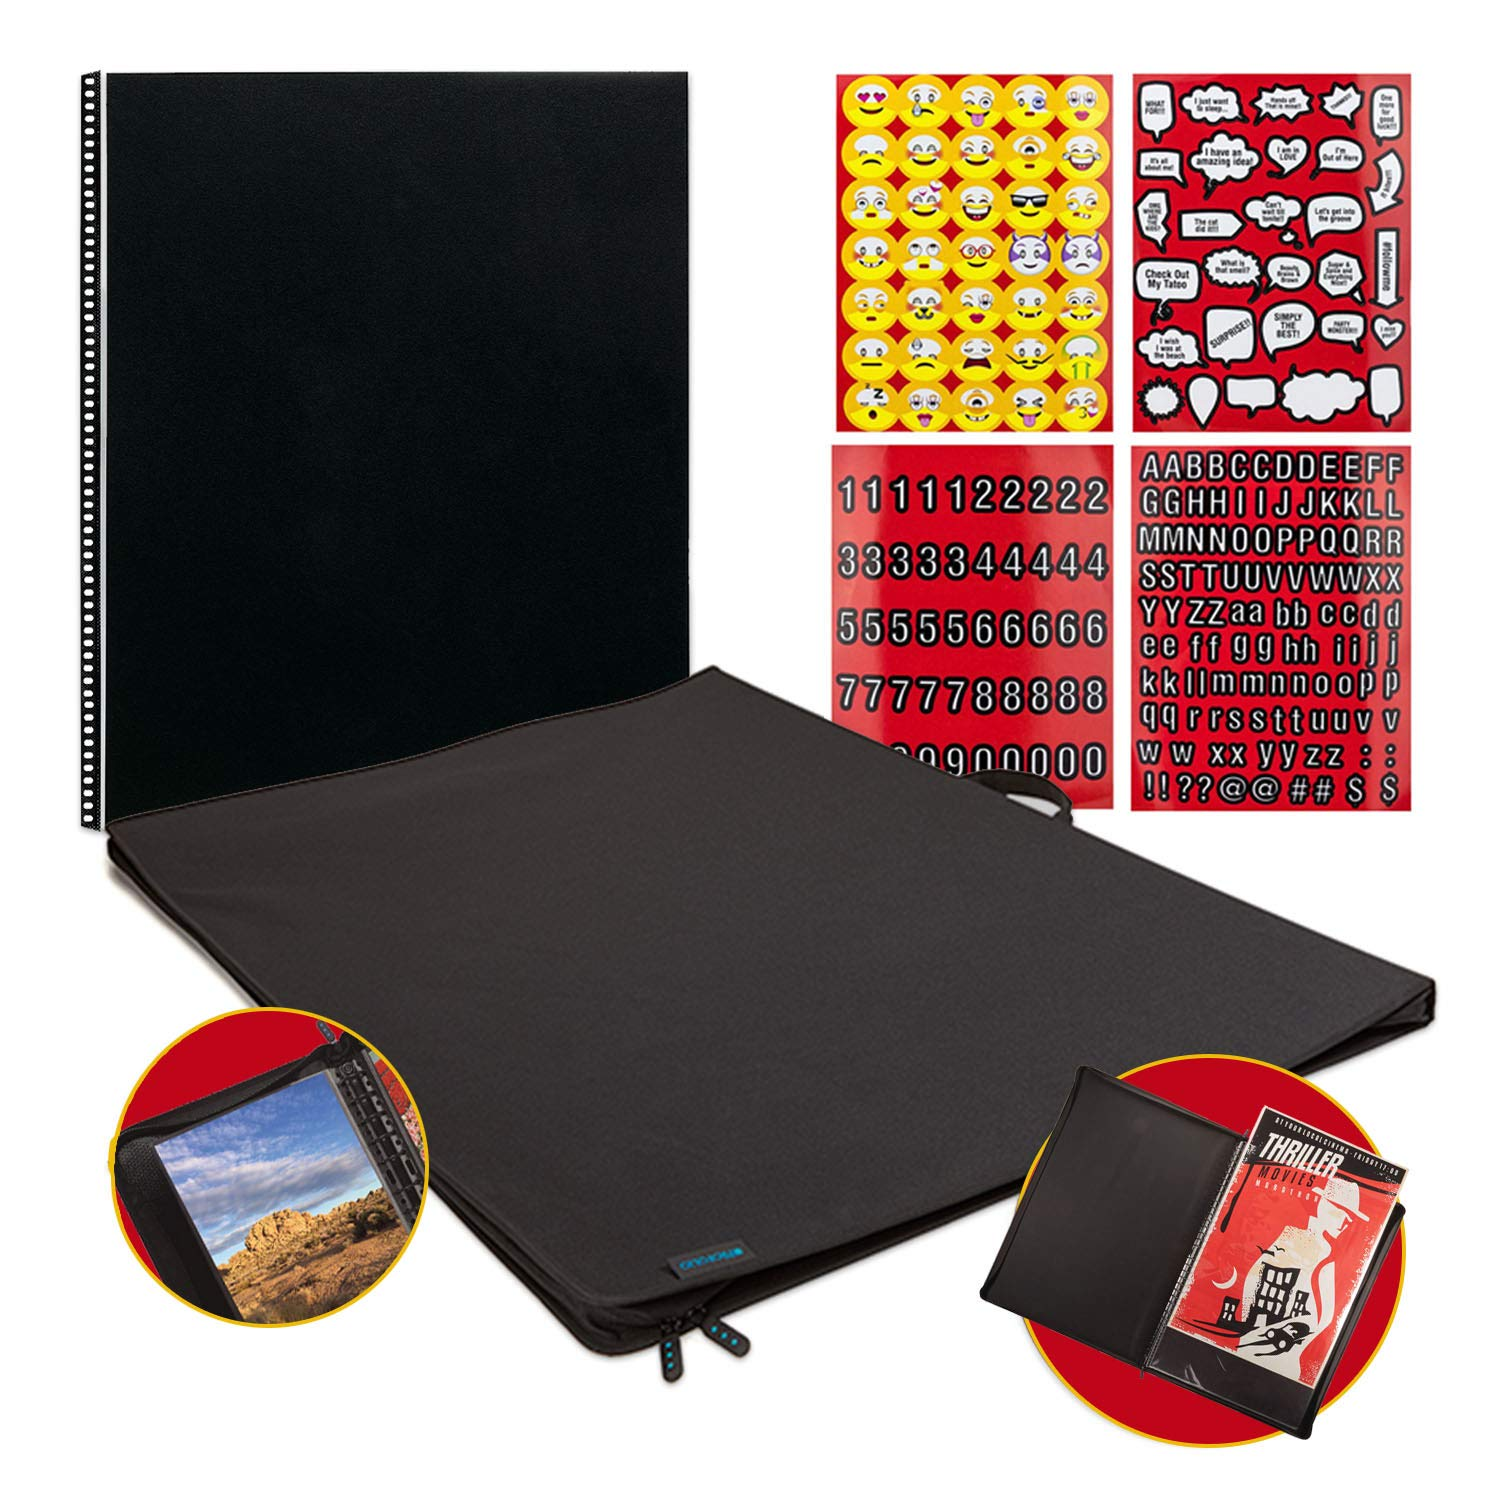 Itoya ProFolio Poster Binder 24'' x 36'' Presentation Storage Display Portfolio + Refill Pages + Emoji Stickers by ITOYA